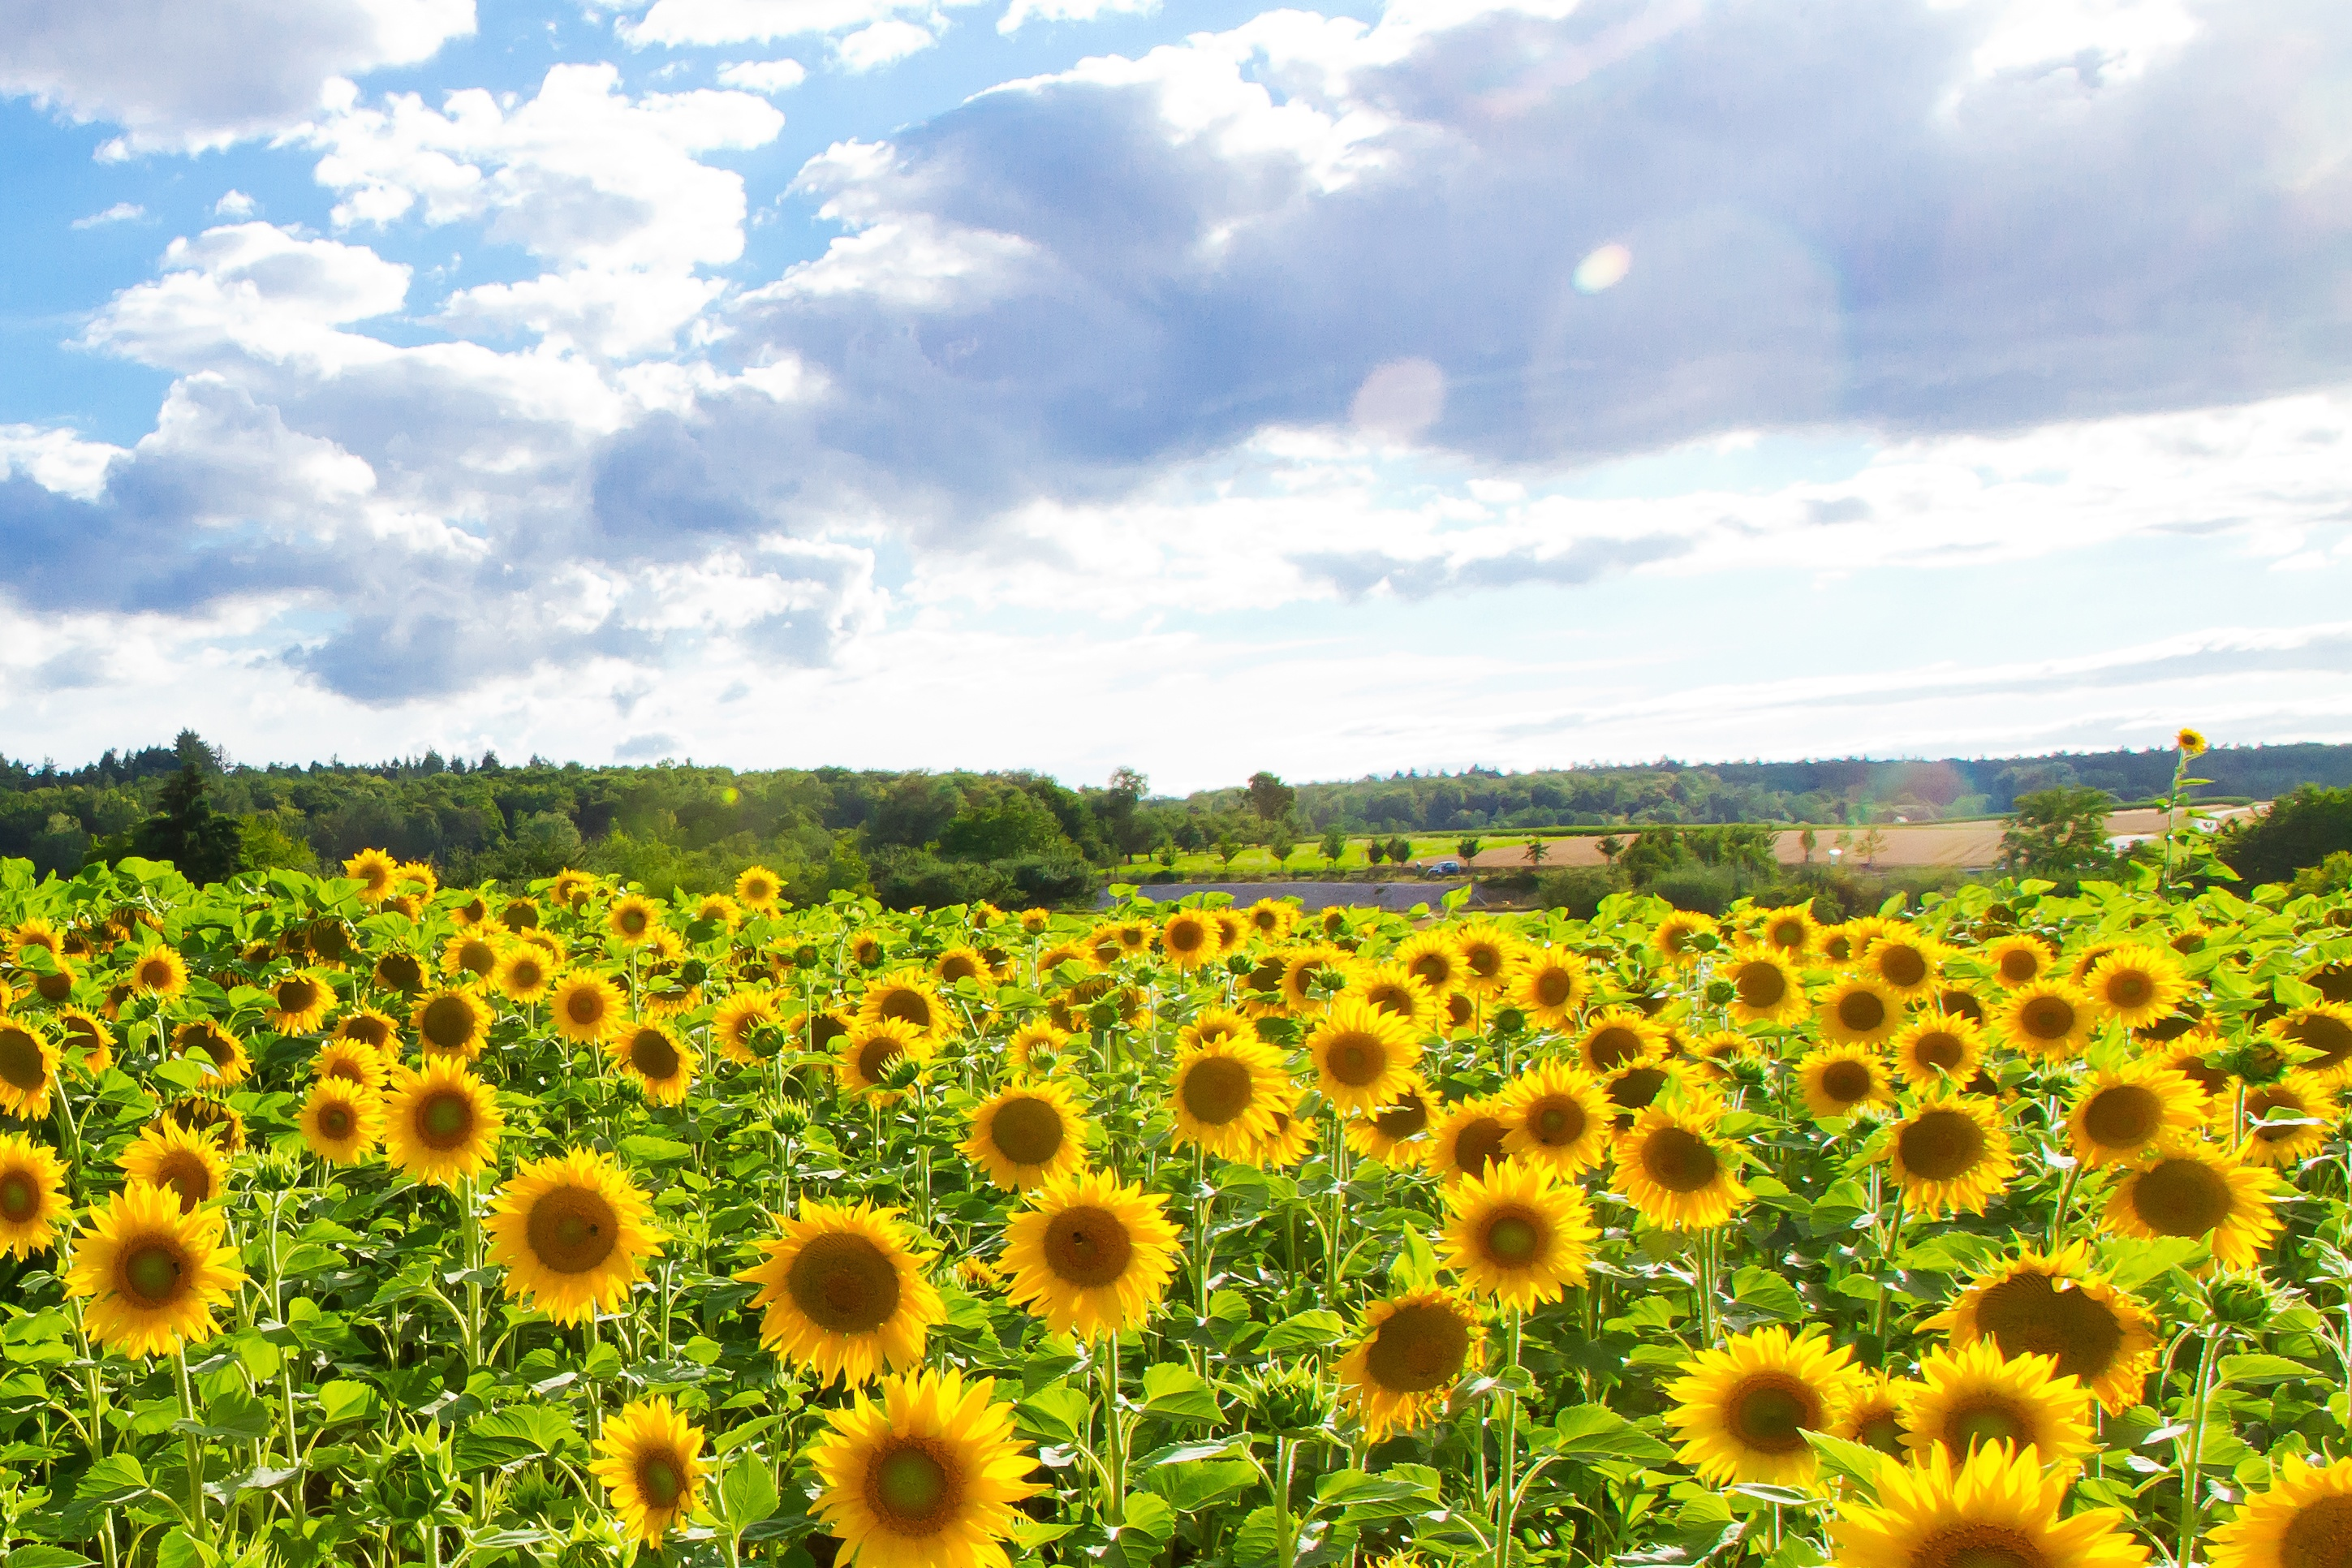 Field of sunflowers for the production of biodiesel, using potassium hydroxide solid